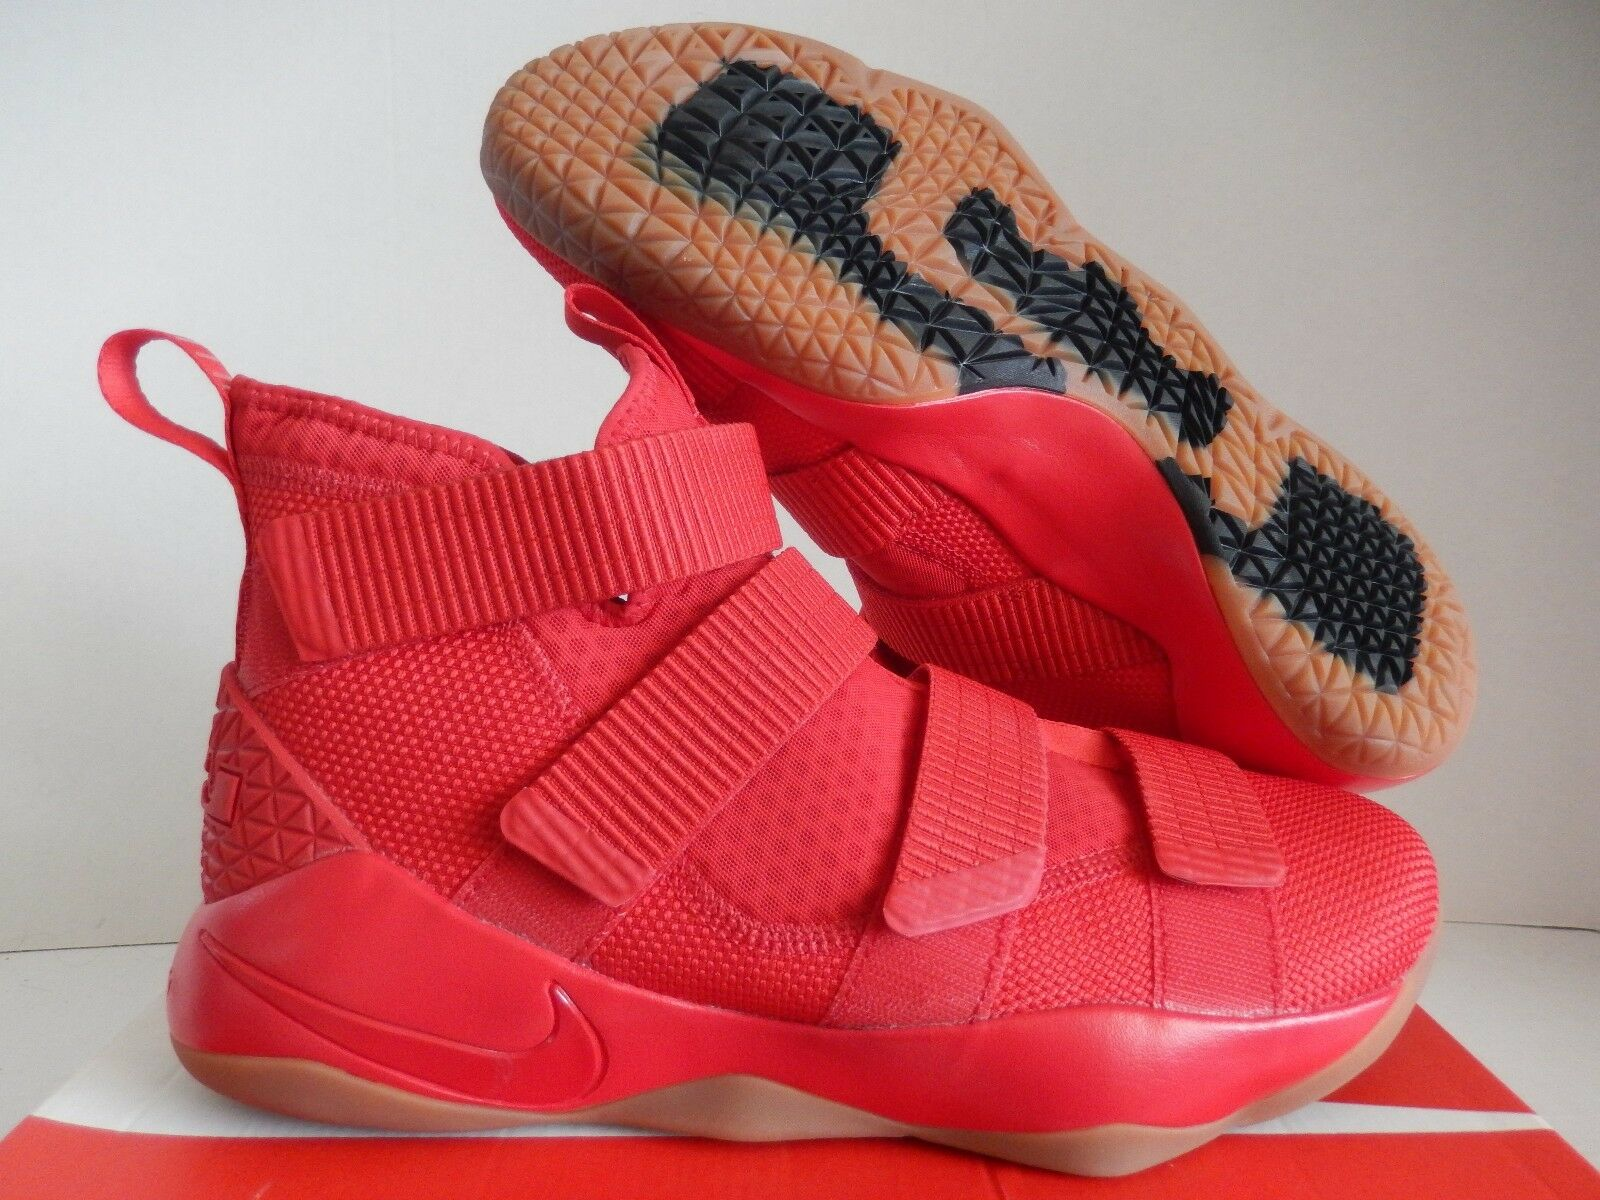 NIKE LEBRON SOLDIER XI SFG ID RED-RED-GUM BROWN SZ 11.5 [AQ2577-993]